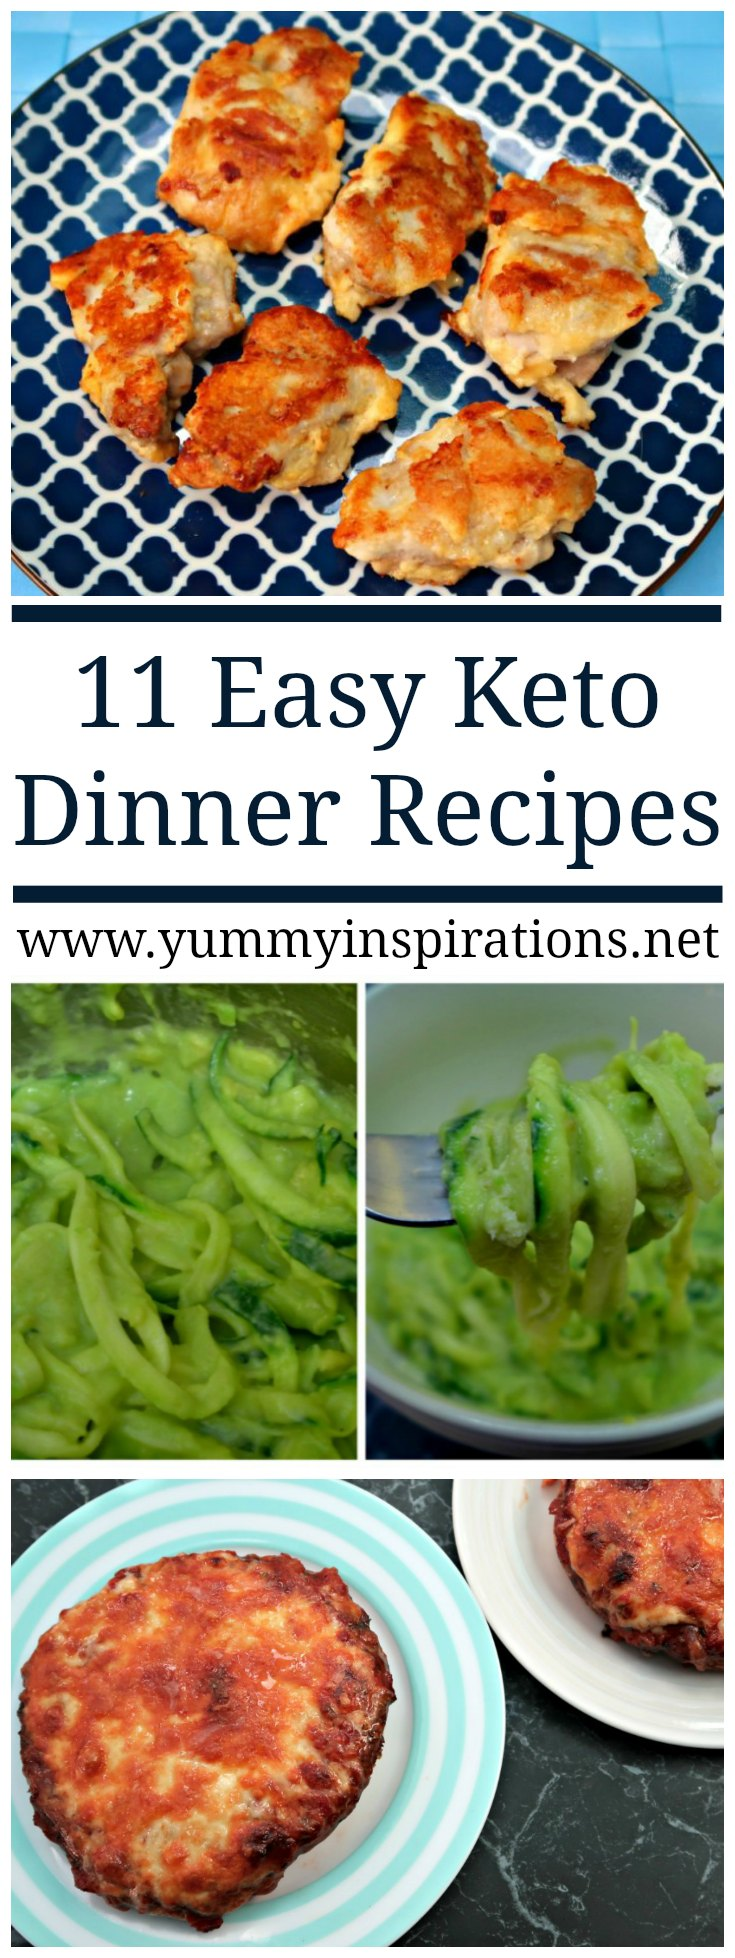 11 easy keto dinner recipes quick low carb ketogenic